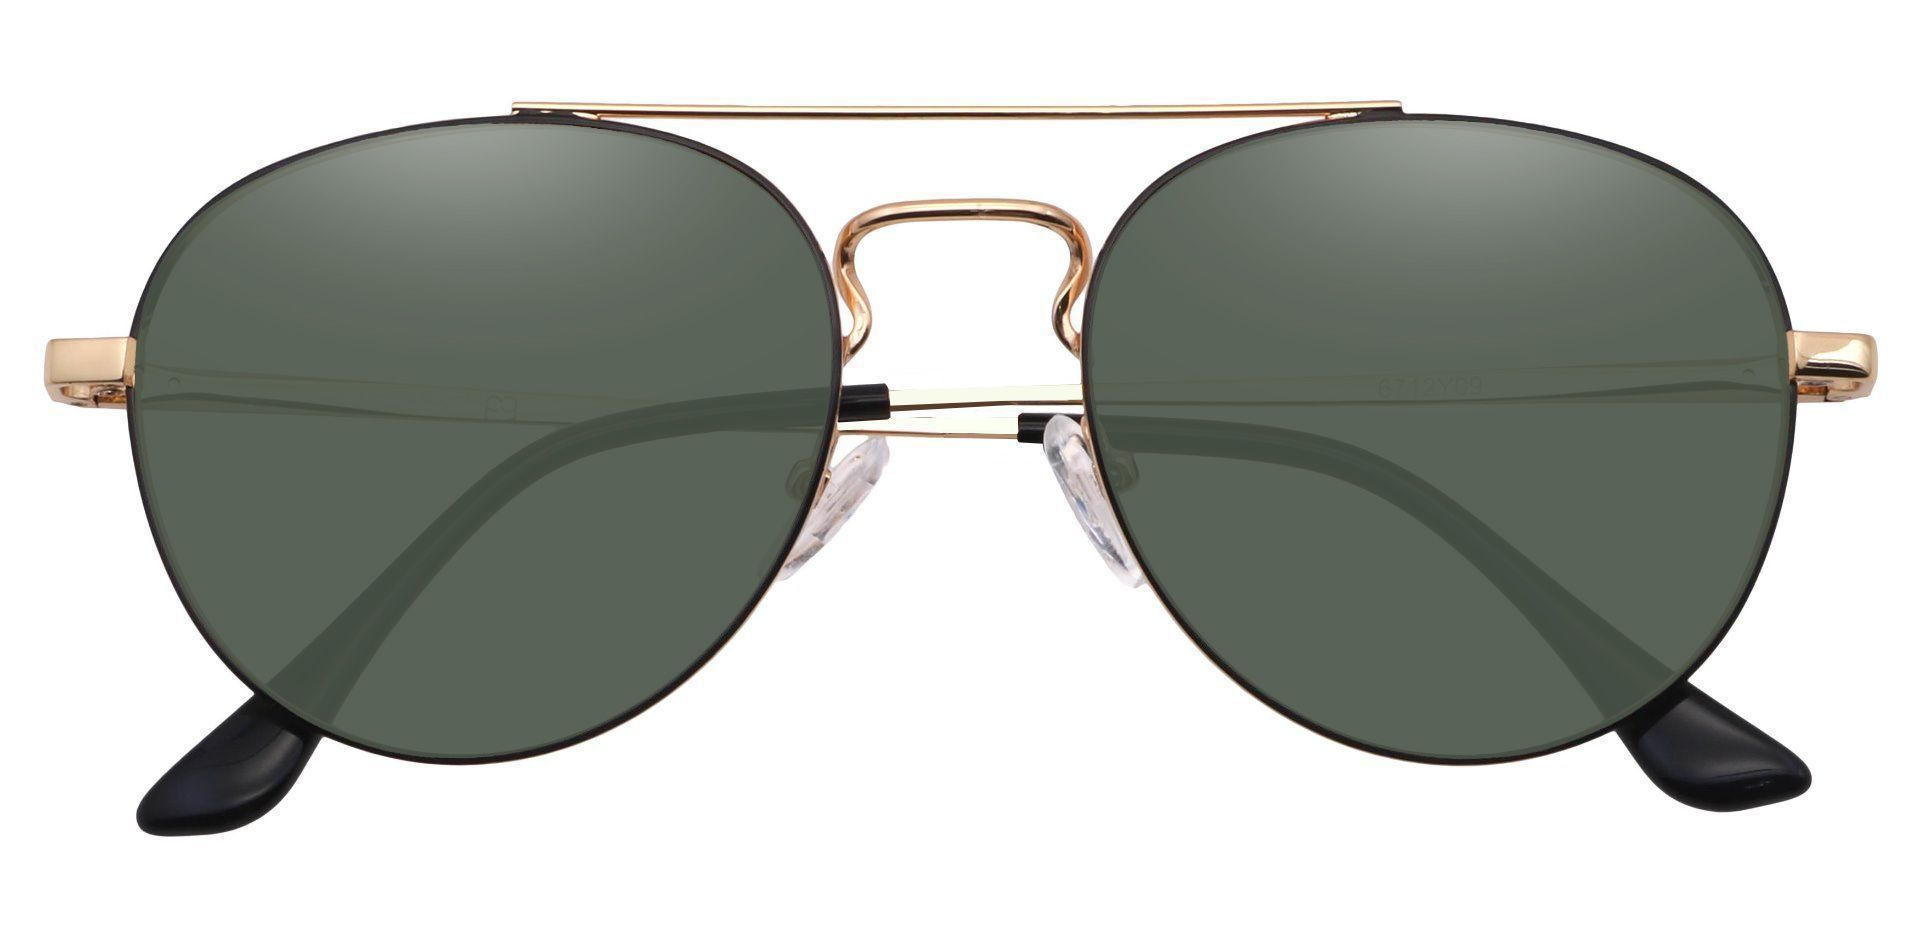 Trapp Aviator Reading Sunglasses - Gold Frame With Green Lenses